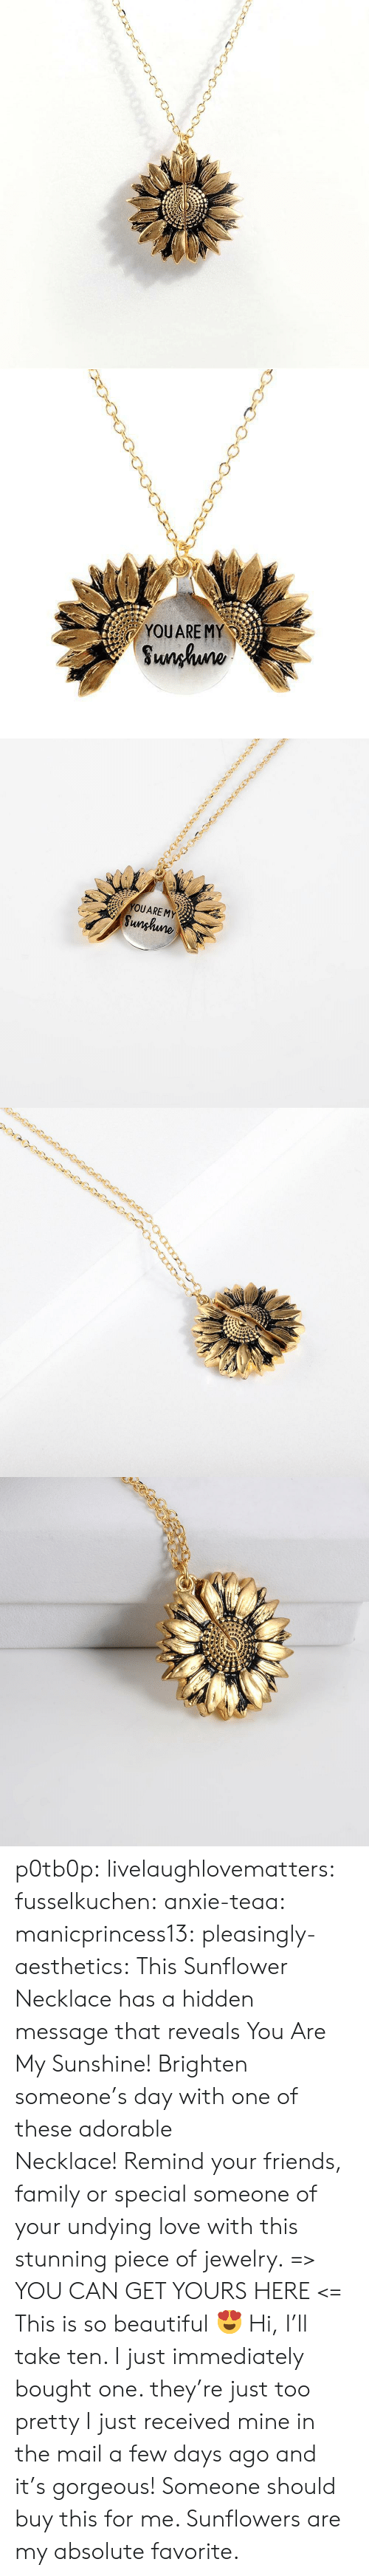 Beautiful, Family, and Friends: YOUARE MY  Sunhuno   YOUARE MY  Sunghune p0tb0p:  livelaughlovematters: fusselkuchen:  anxie-teaa:   manicprincess13:   pleasingly-aesthetics:  This Sunflower Necklace has a hidden message that reveals You Are My Sunshine! Brighten someone's day with one of these adorable Necklace! Remind your friends, family or special someone of your undying love with this stunning piece of jewelry. => YOU CAN GET YOURS HERE <=   This is so beautiful 😍    Hi, I'll take ten.    I just immediately bought one. they're just too pretty   I just received mine in the mail a few days ago and it's gorgeous!   Someone should buy this for me. Sunflowers are my absolute favorite.